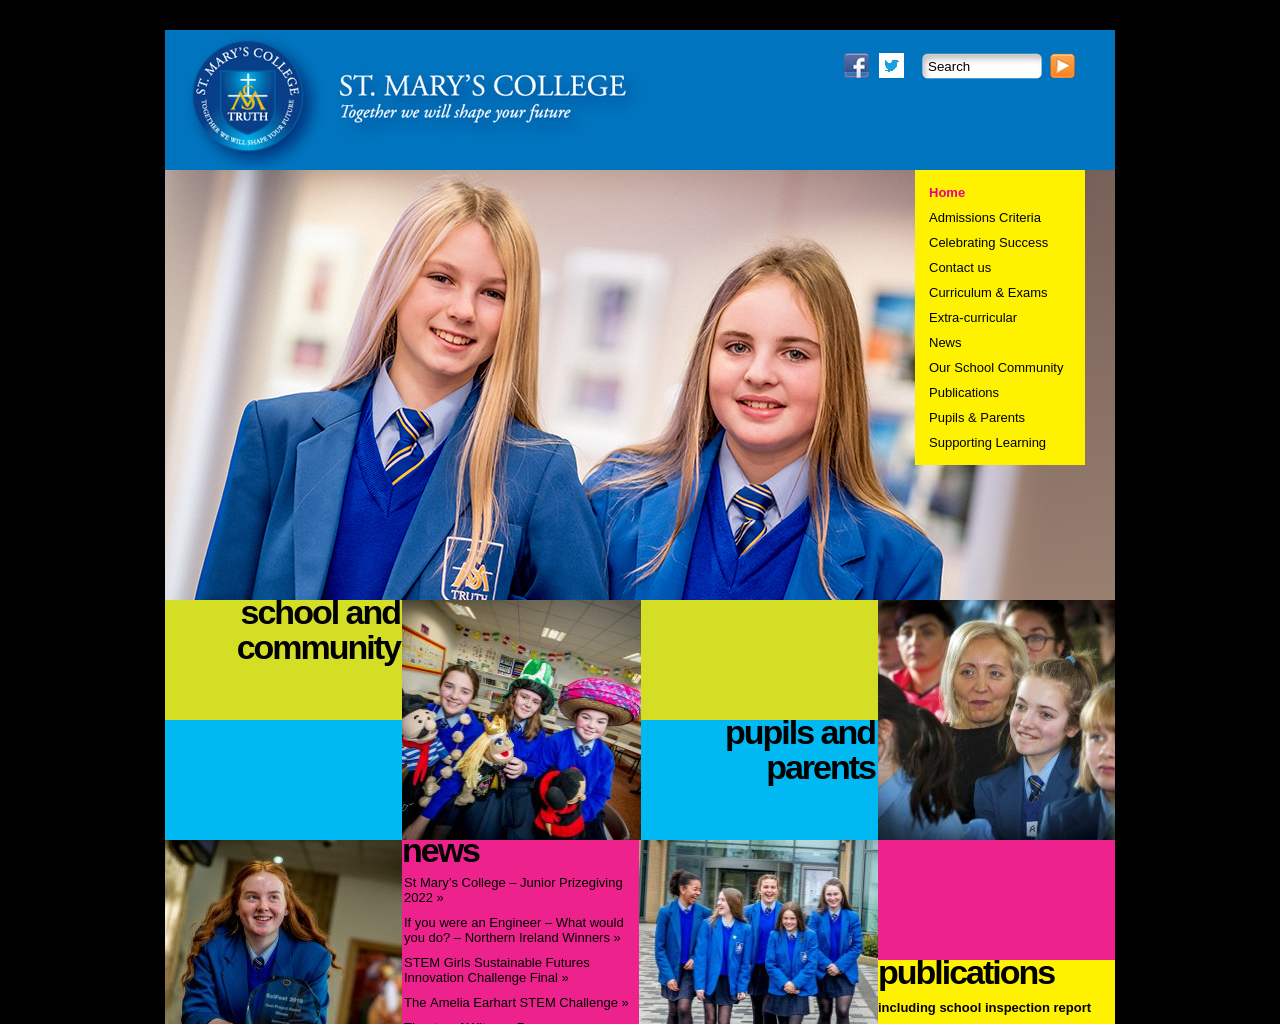 St. Mary's College Website